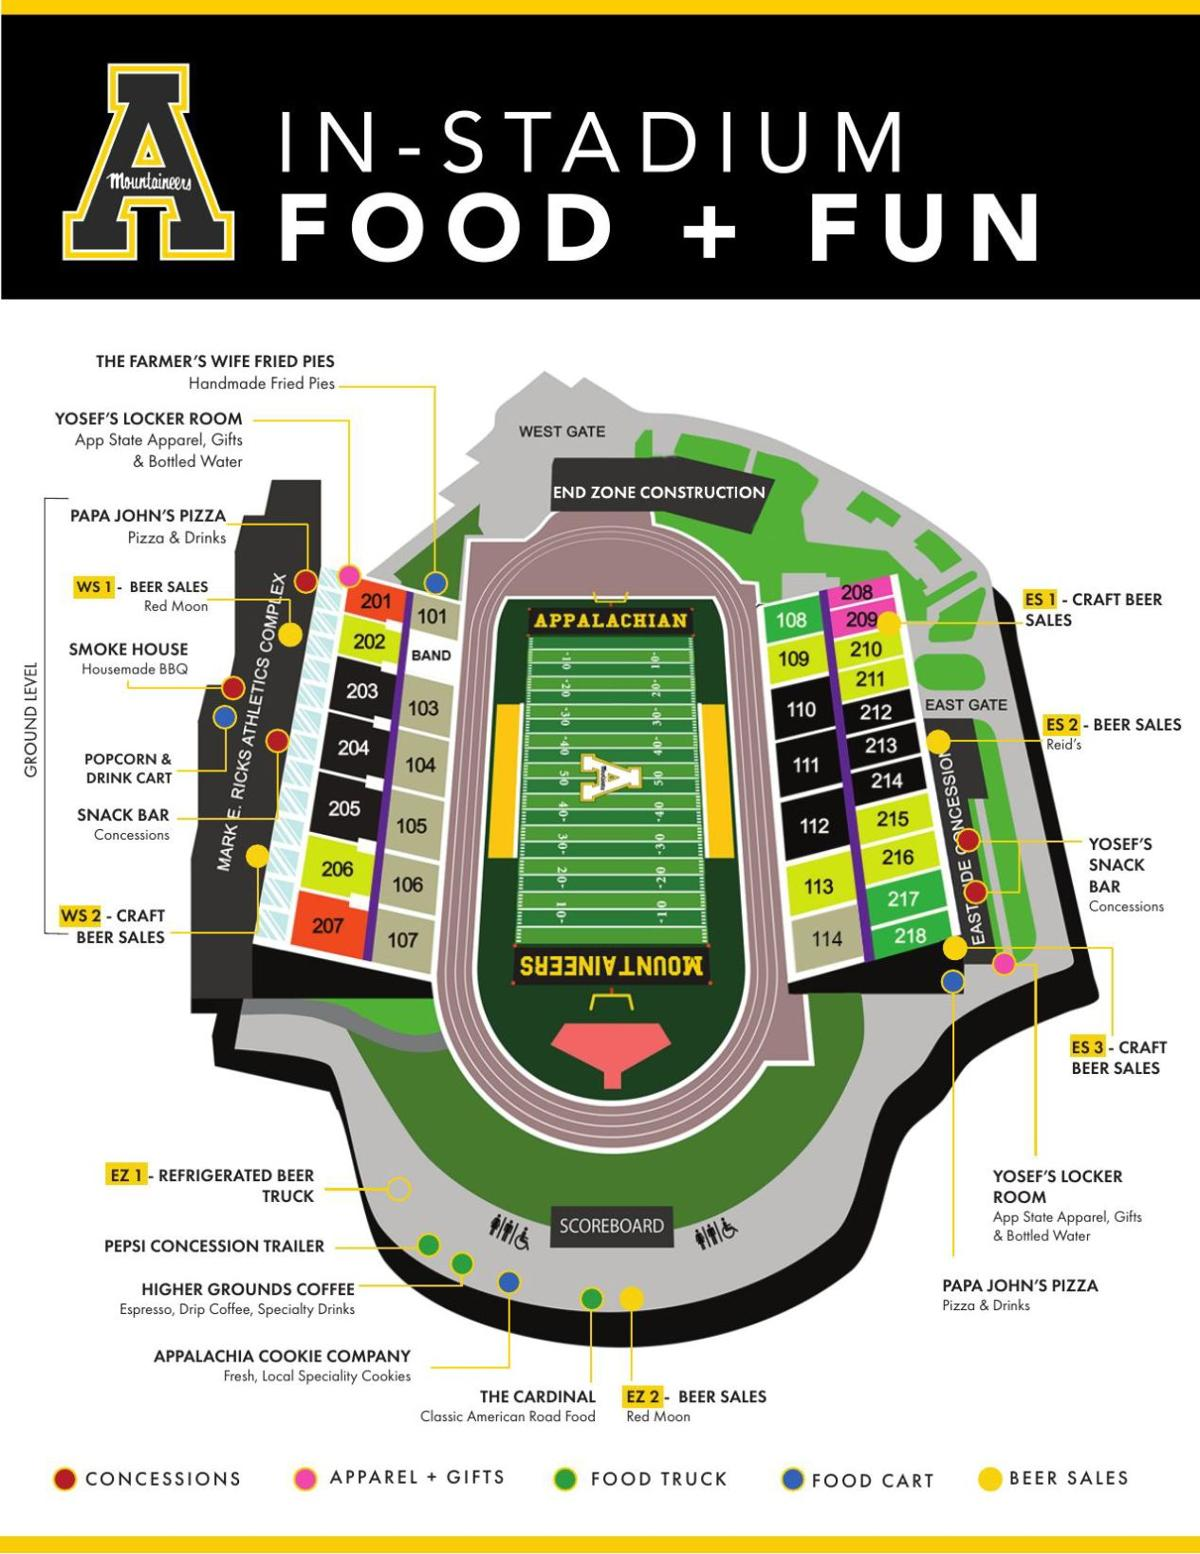 Alcohol sale locations in Kidd Brewer Stadium